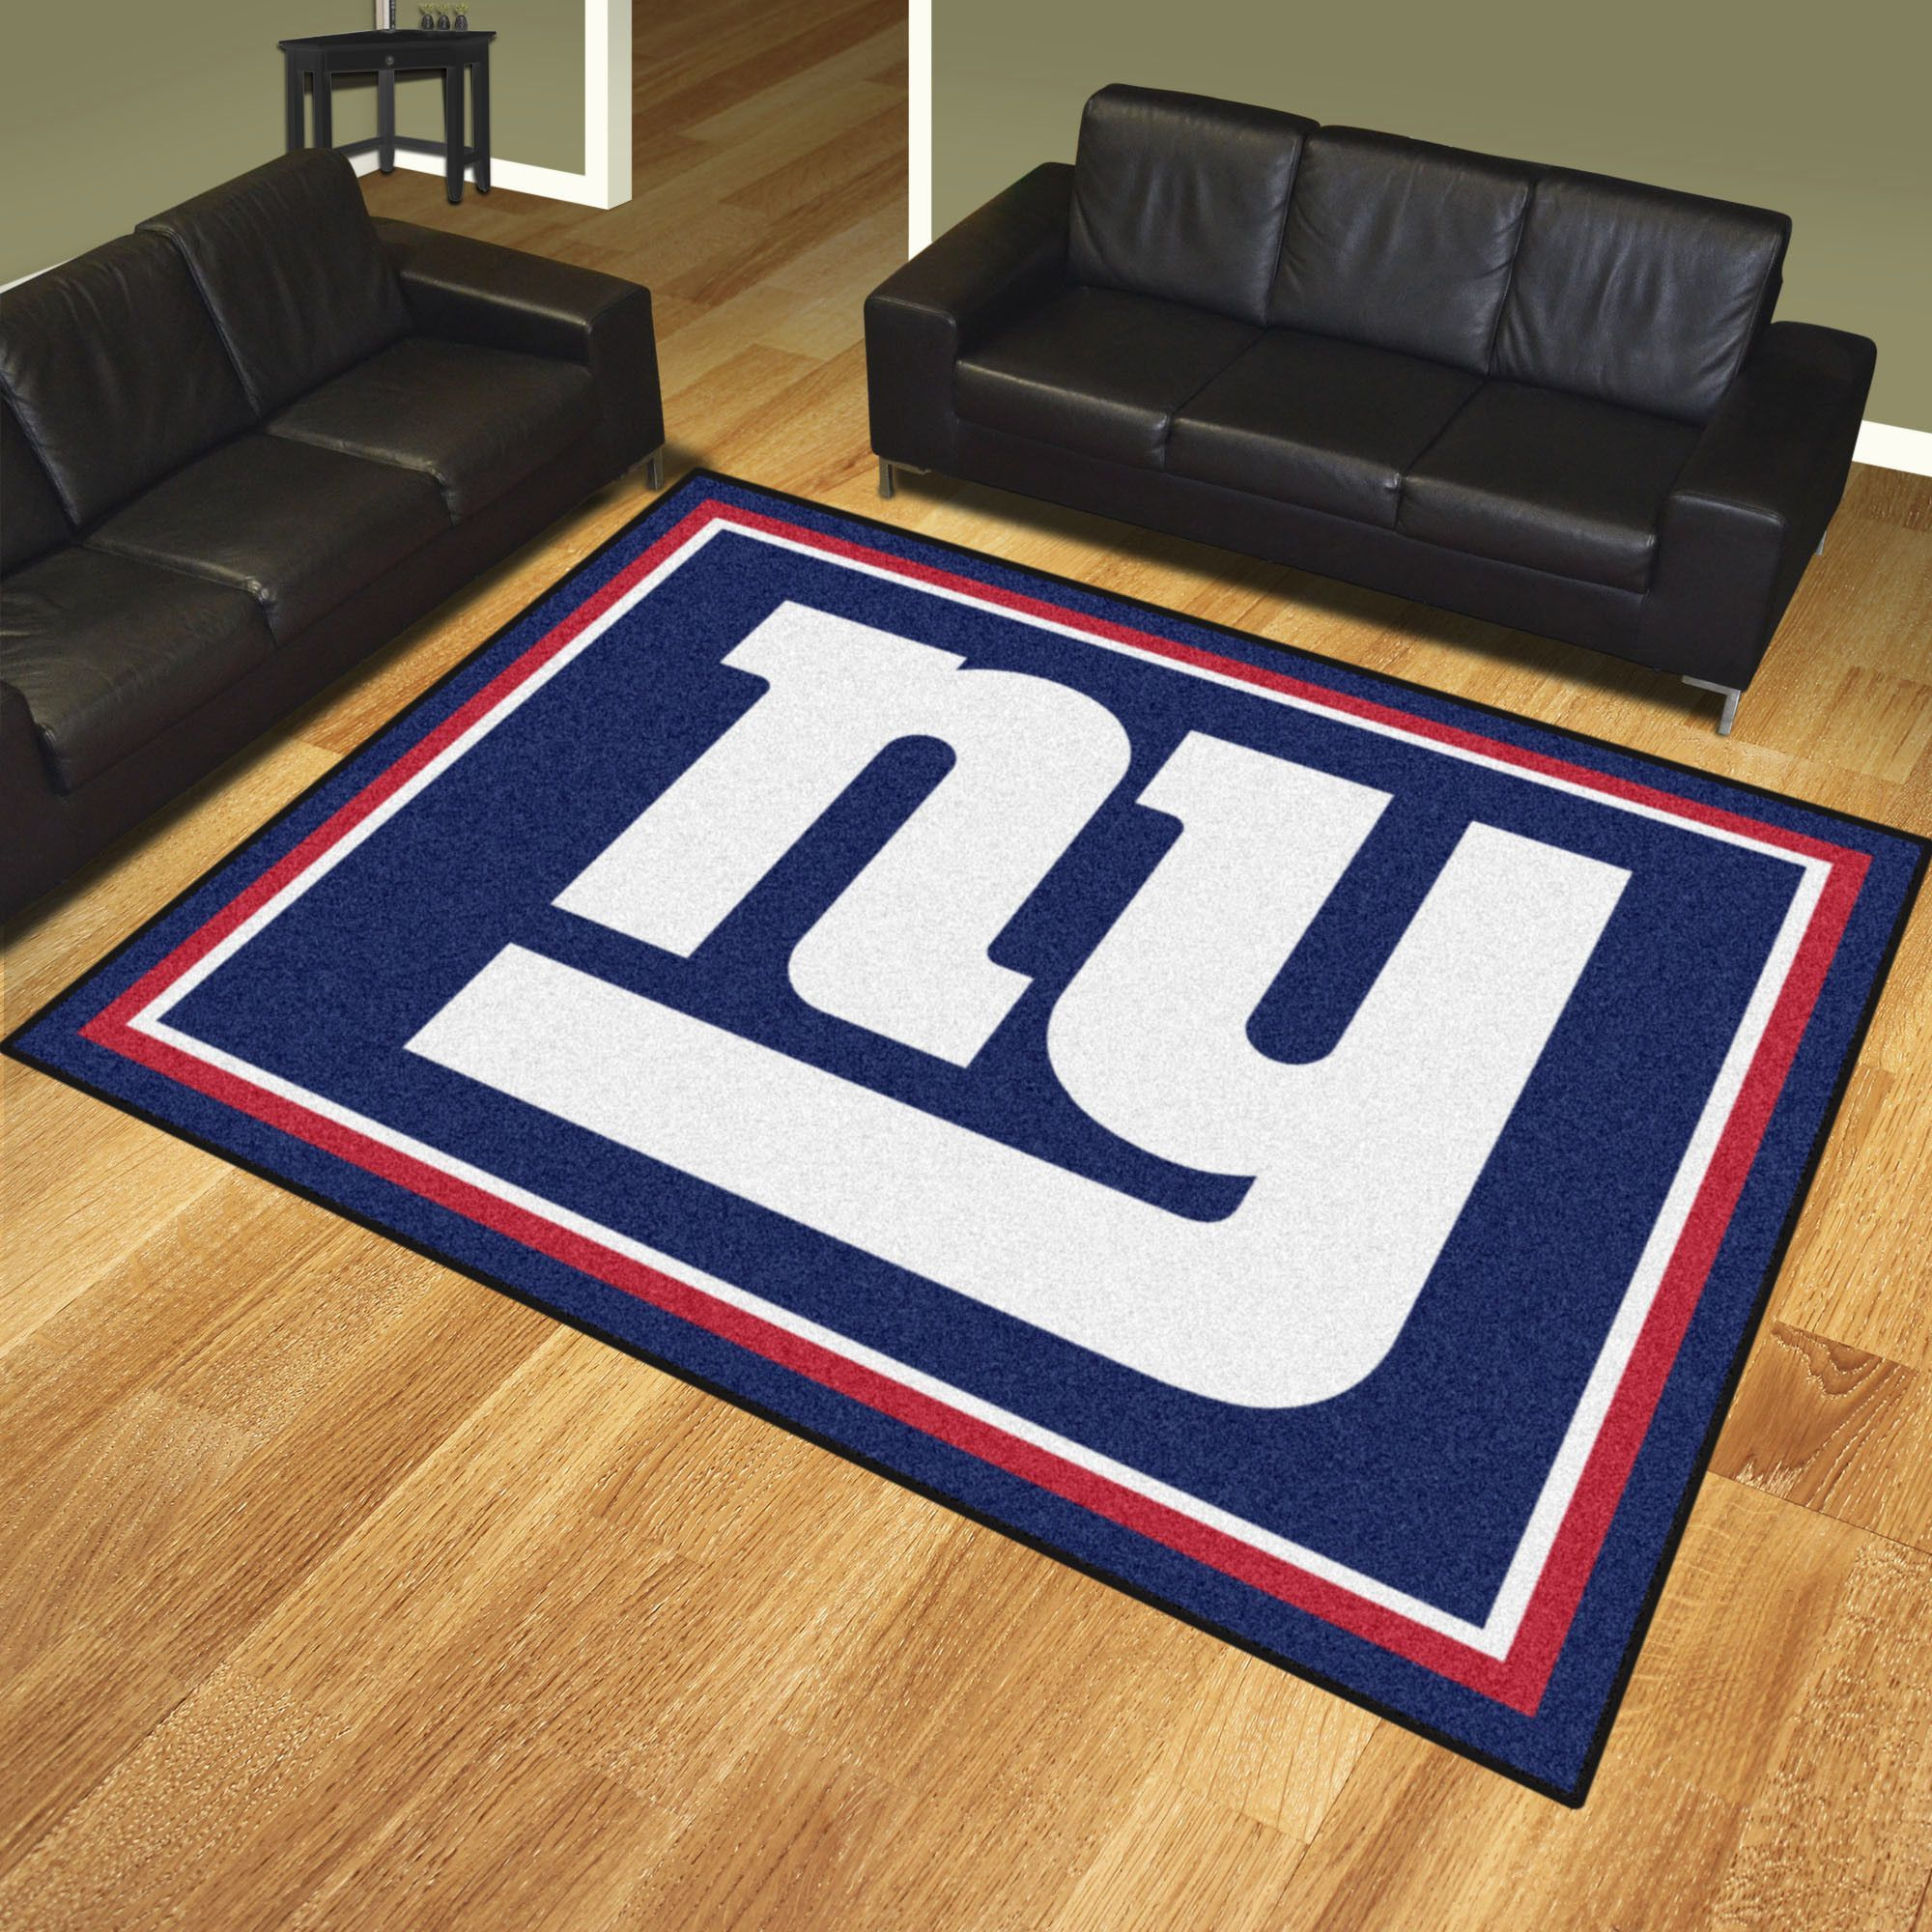 New York Giants 8x10 Rug Show your team pride and add style to